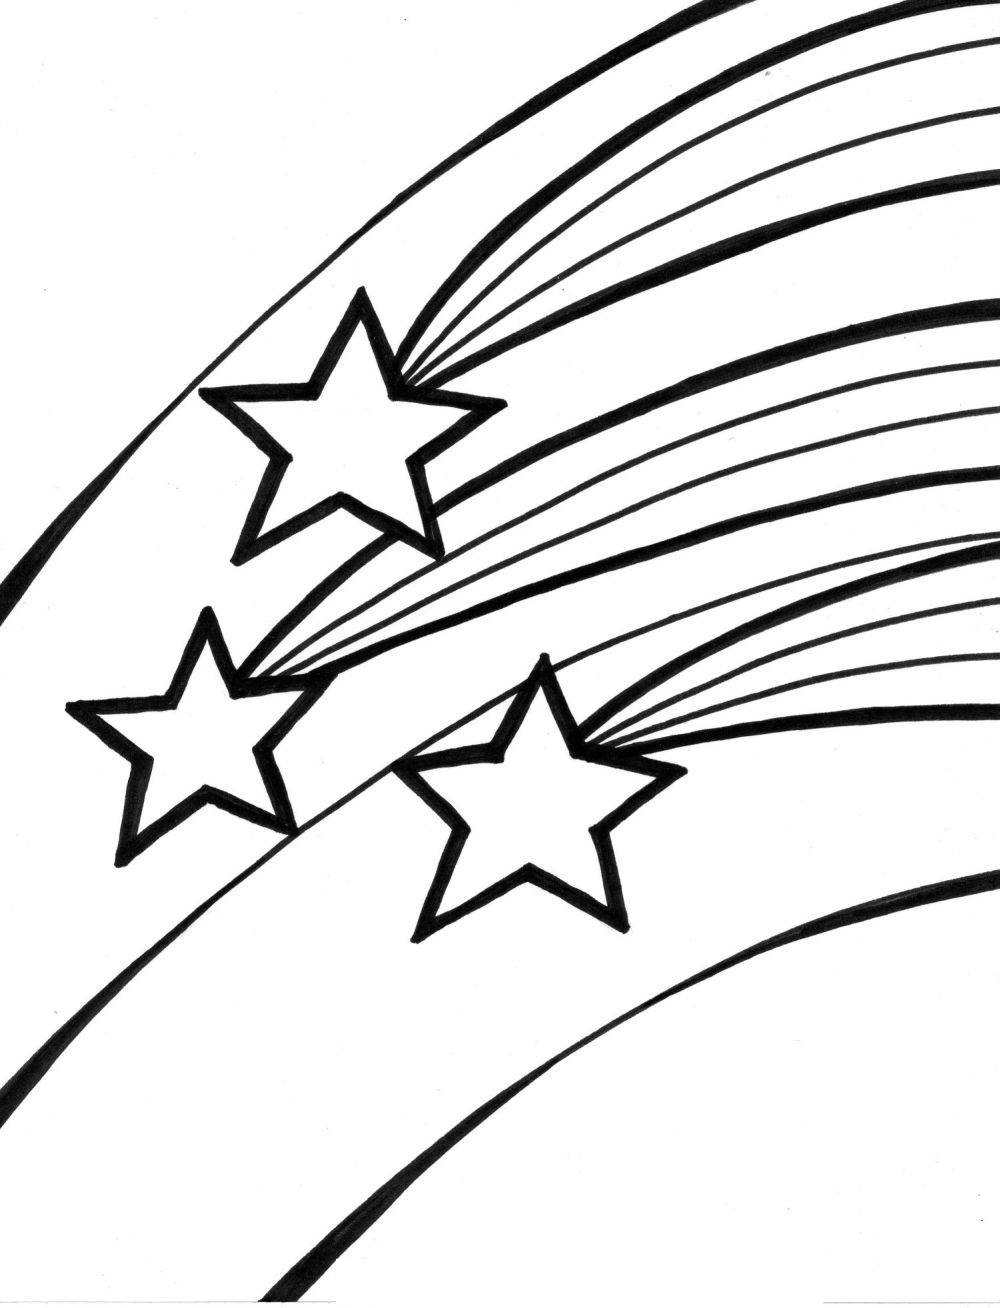 colouring pages stars free printable star coloring pages for kids colouring stars pages 1 2